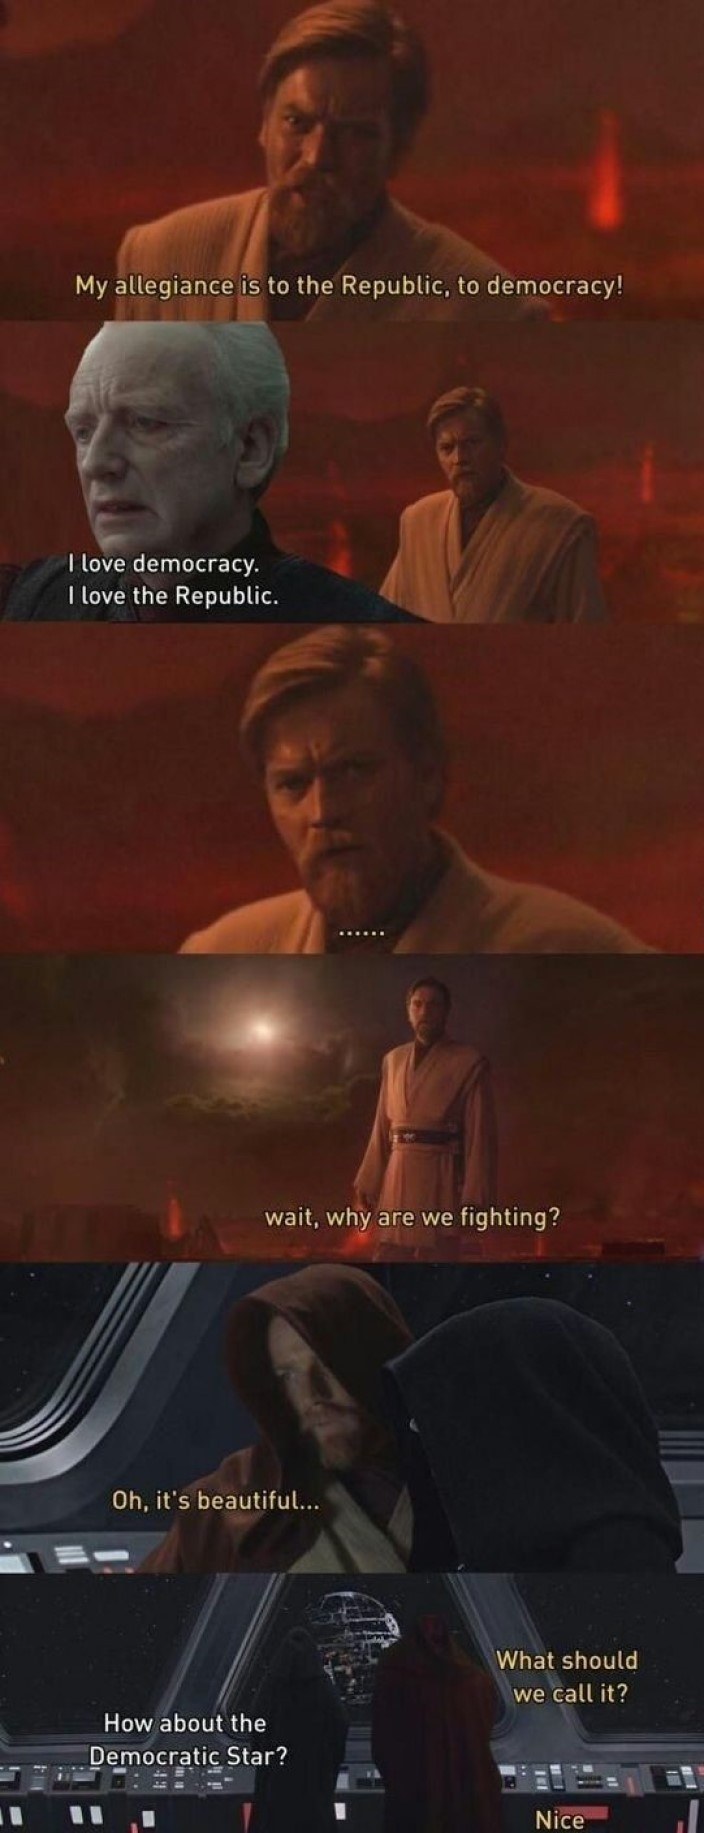 true edning. .. Is there a theoretical future where the republic remained good and palpatine was usurped by investigative Jedi